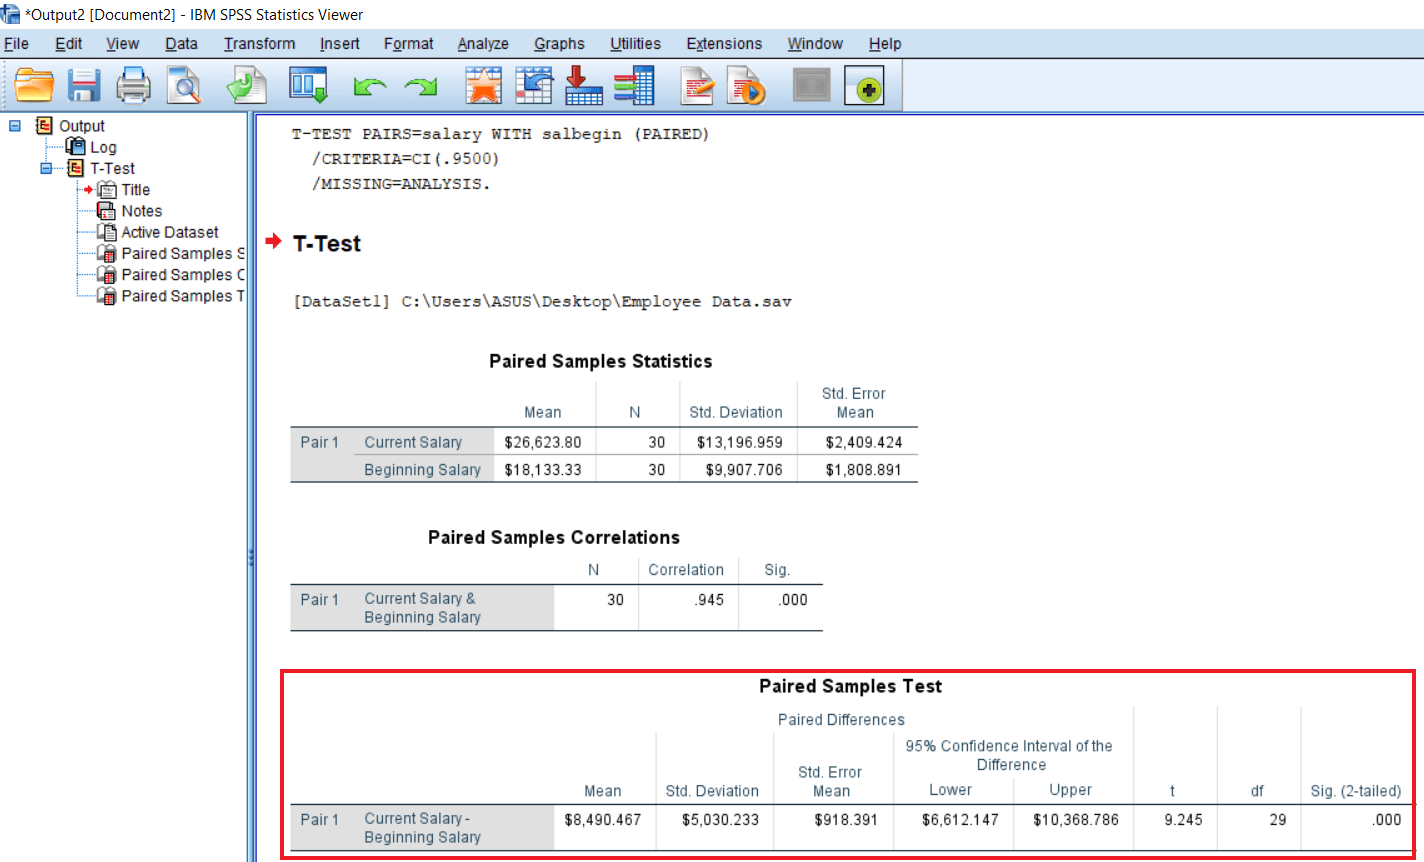 Output of Paired Sample T-test